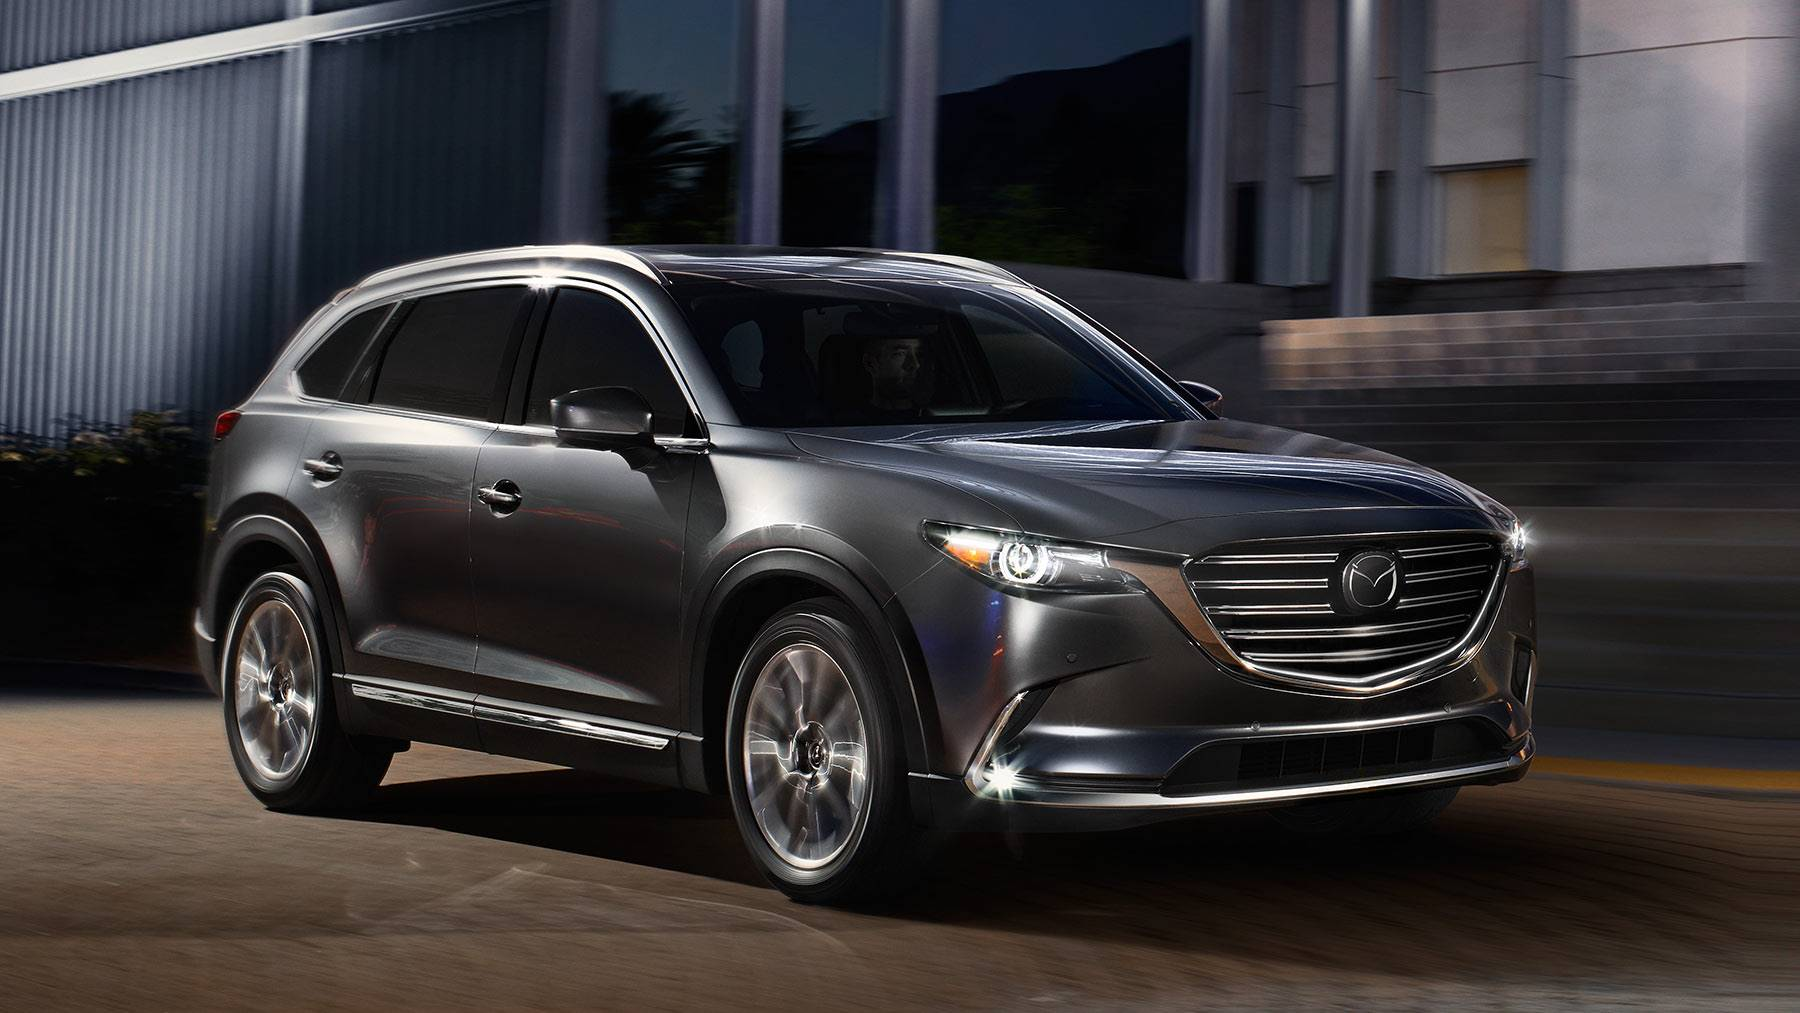 2018 Mazda CX-9 Financing in New Braunfels, TX